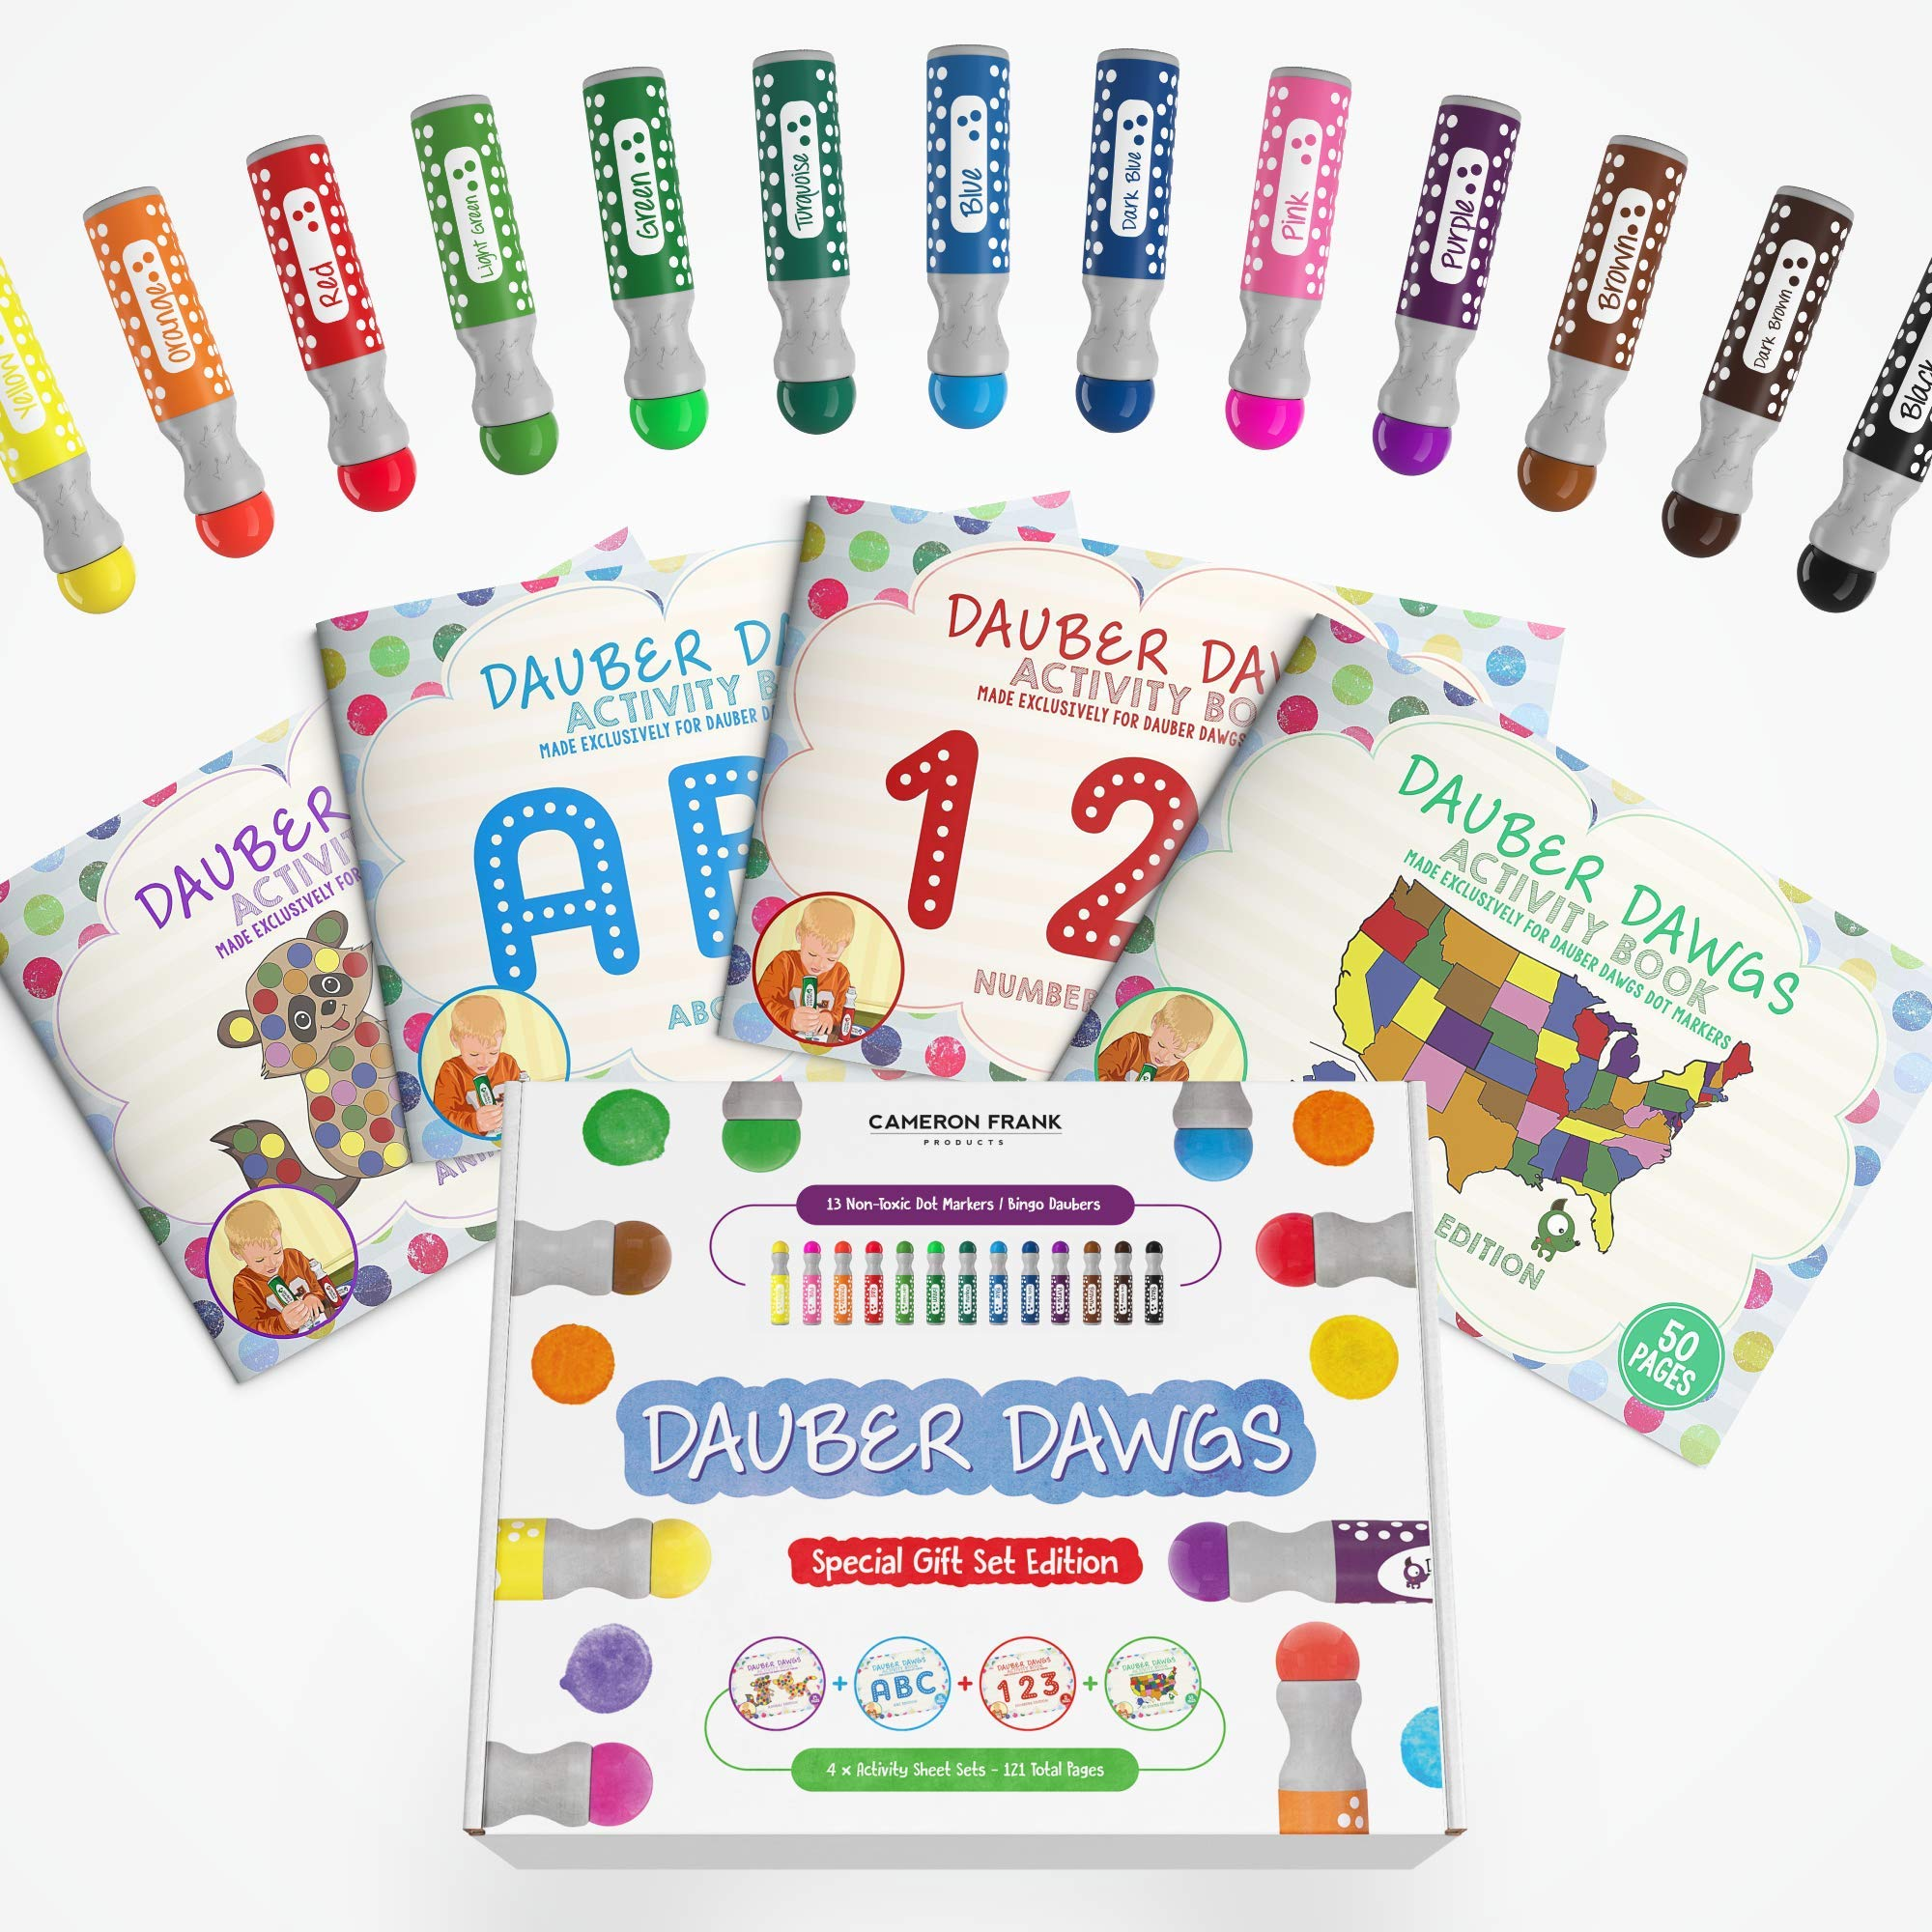 Washable Dot Markers 13 Pack With 121 Activity Sheets For Kids, Gift Set With Toddler Art Activities, Preschool Children Arts Crafts Supplies Kit, Special Holiday Bingo Dabbers Dobbers, Dauber Dawgs by Cameron Frank Products